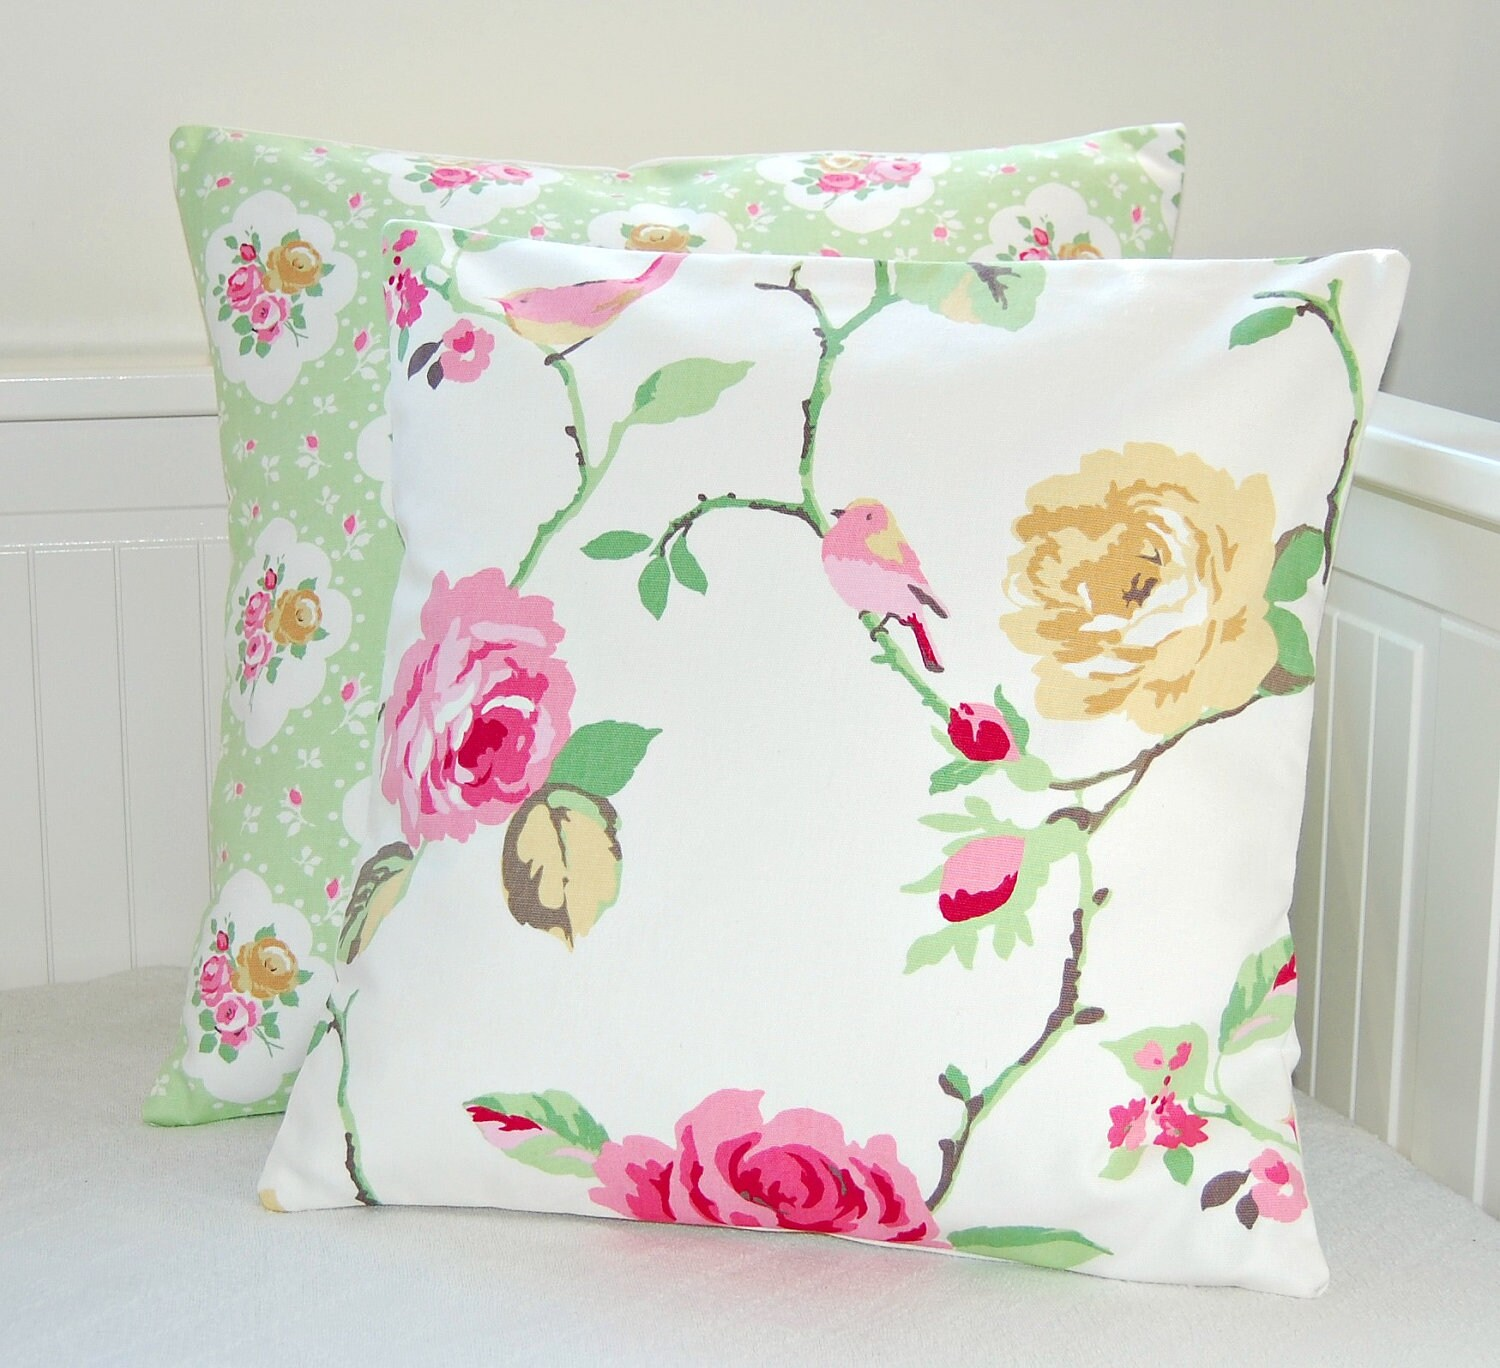 vintage shabby chic style birds pink roses by LittleJoobieBoo